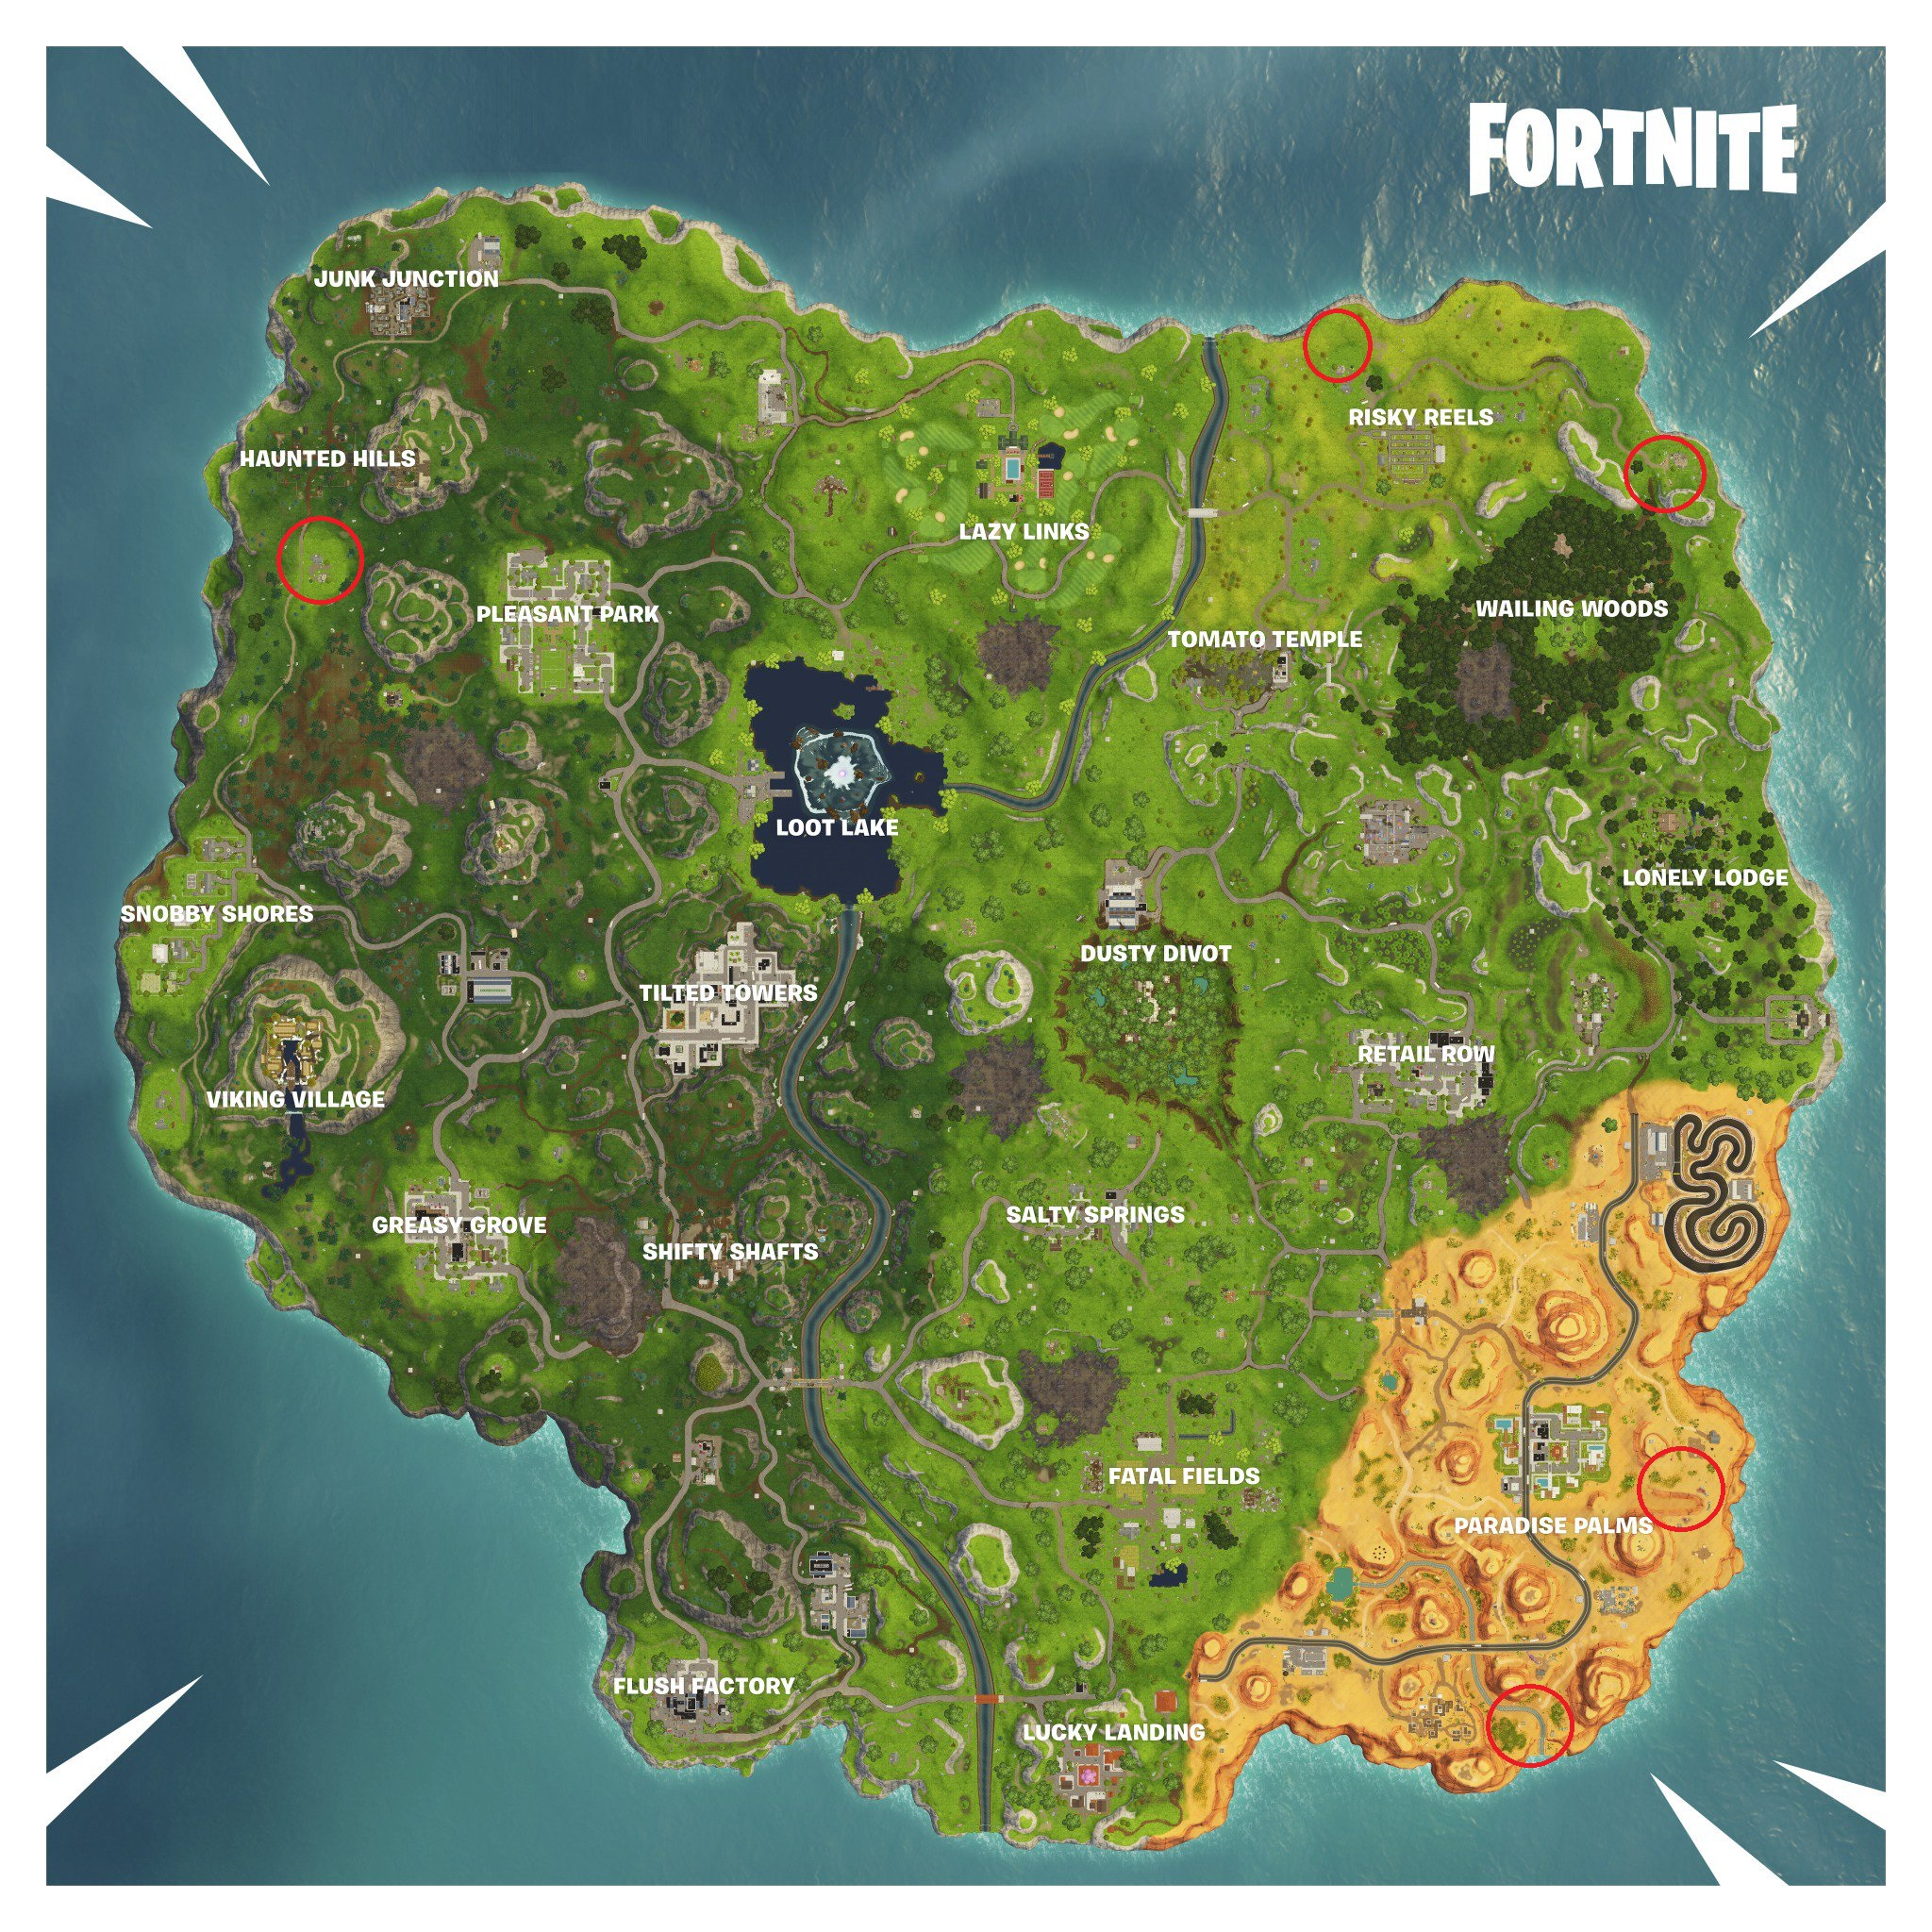 Days of Fortnite Day 11 Leaked Challenge and Reward